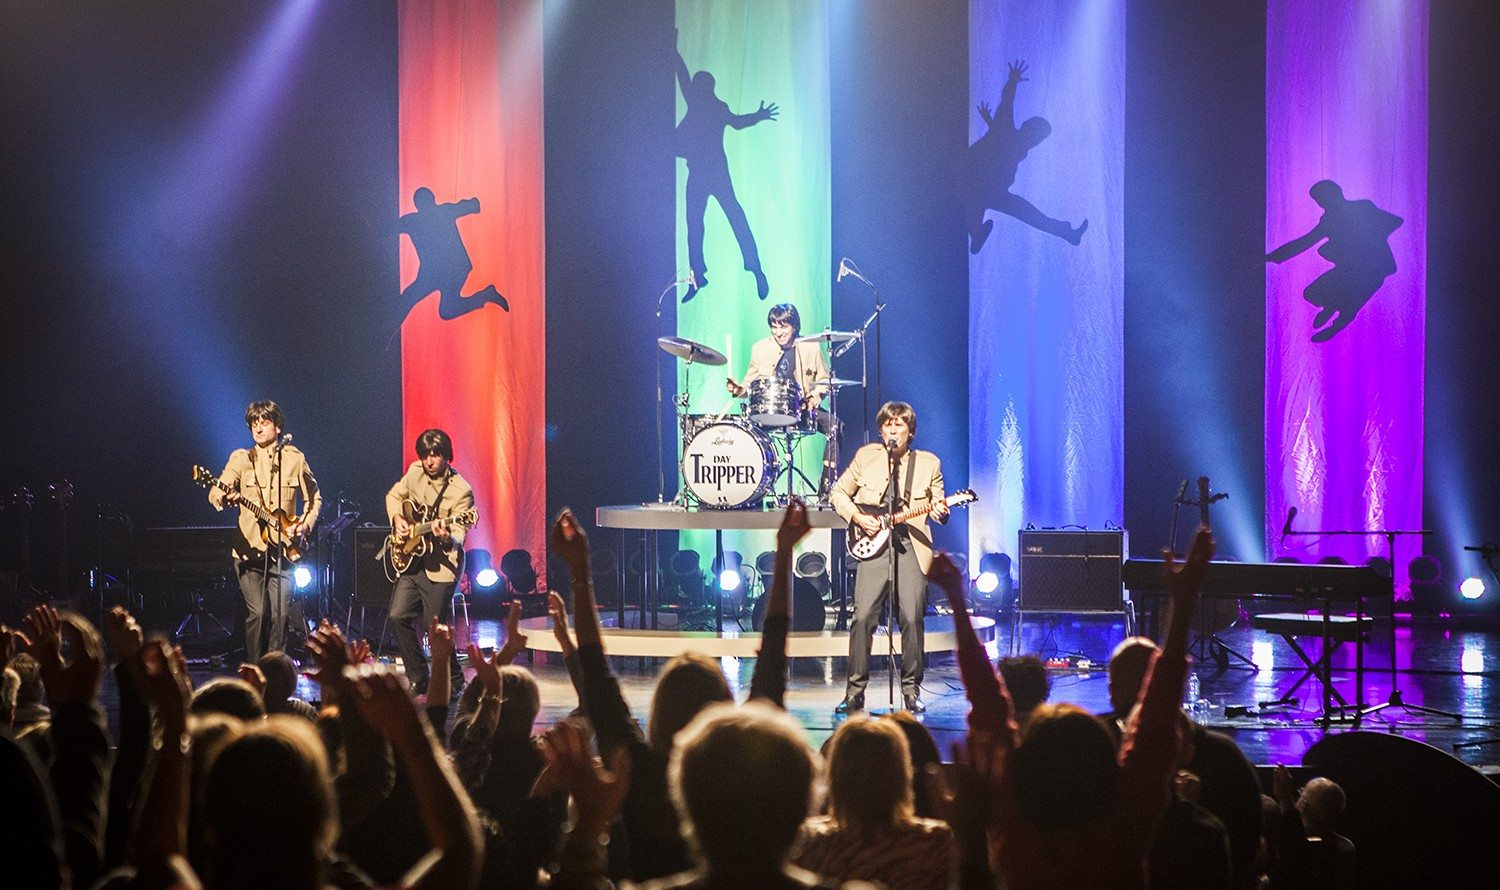 WEEKENDER: The Beatles Experience, a cool art party, and an orchestra outing for families are on the bill this April weekend